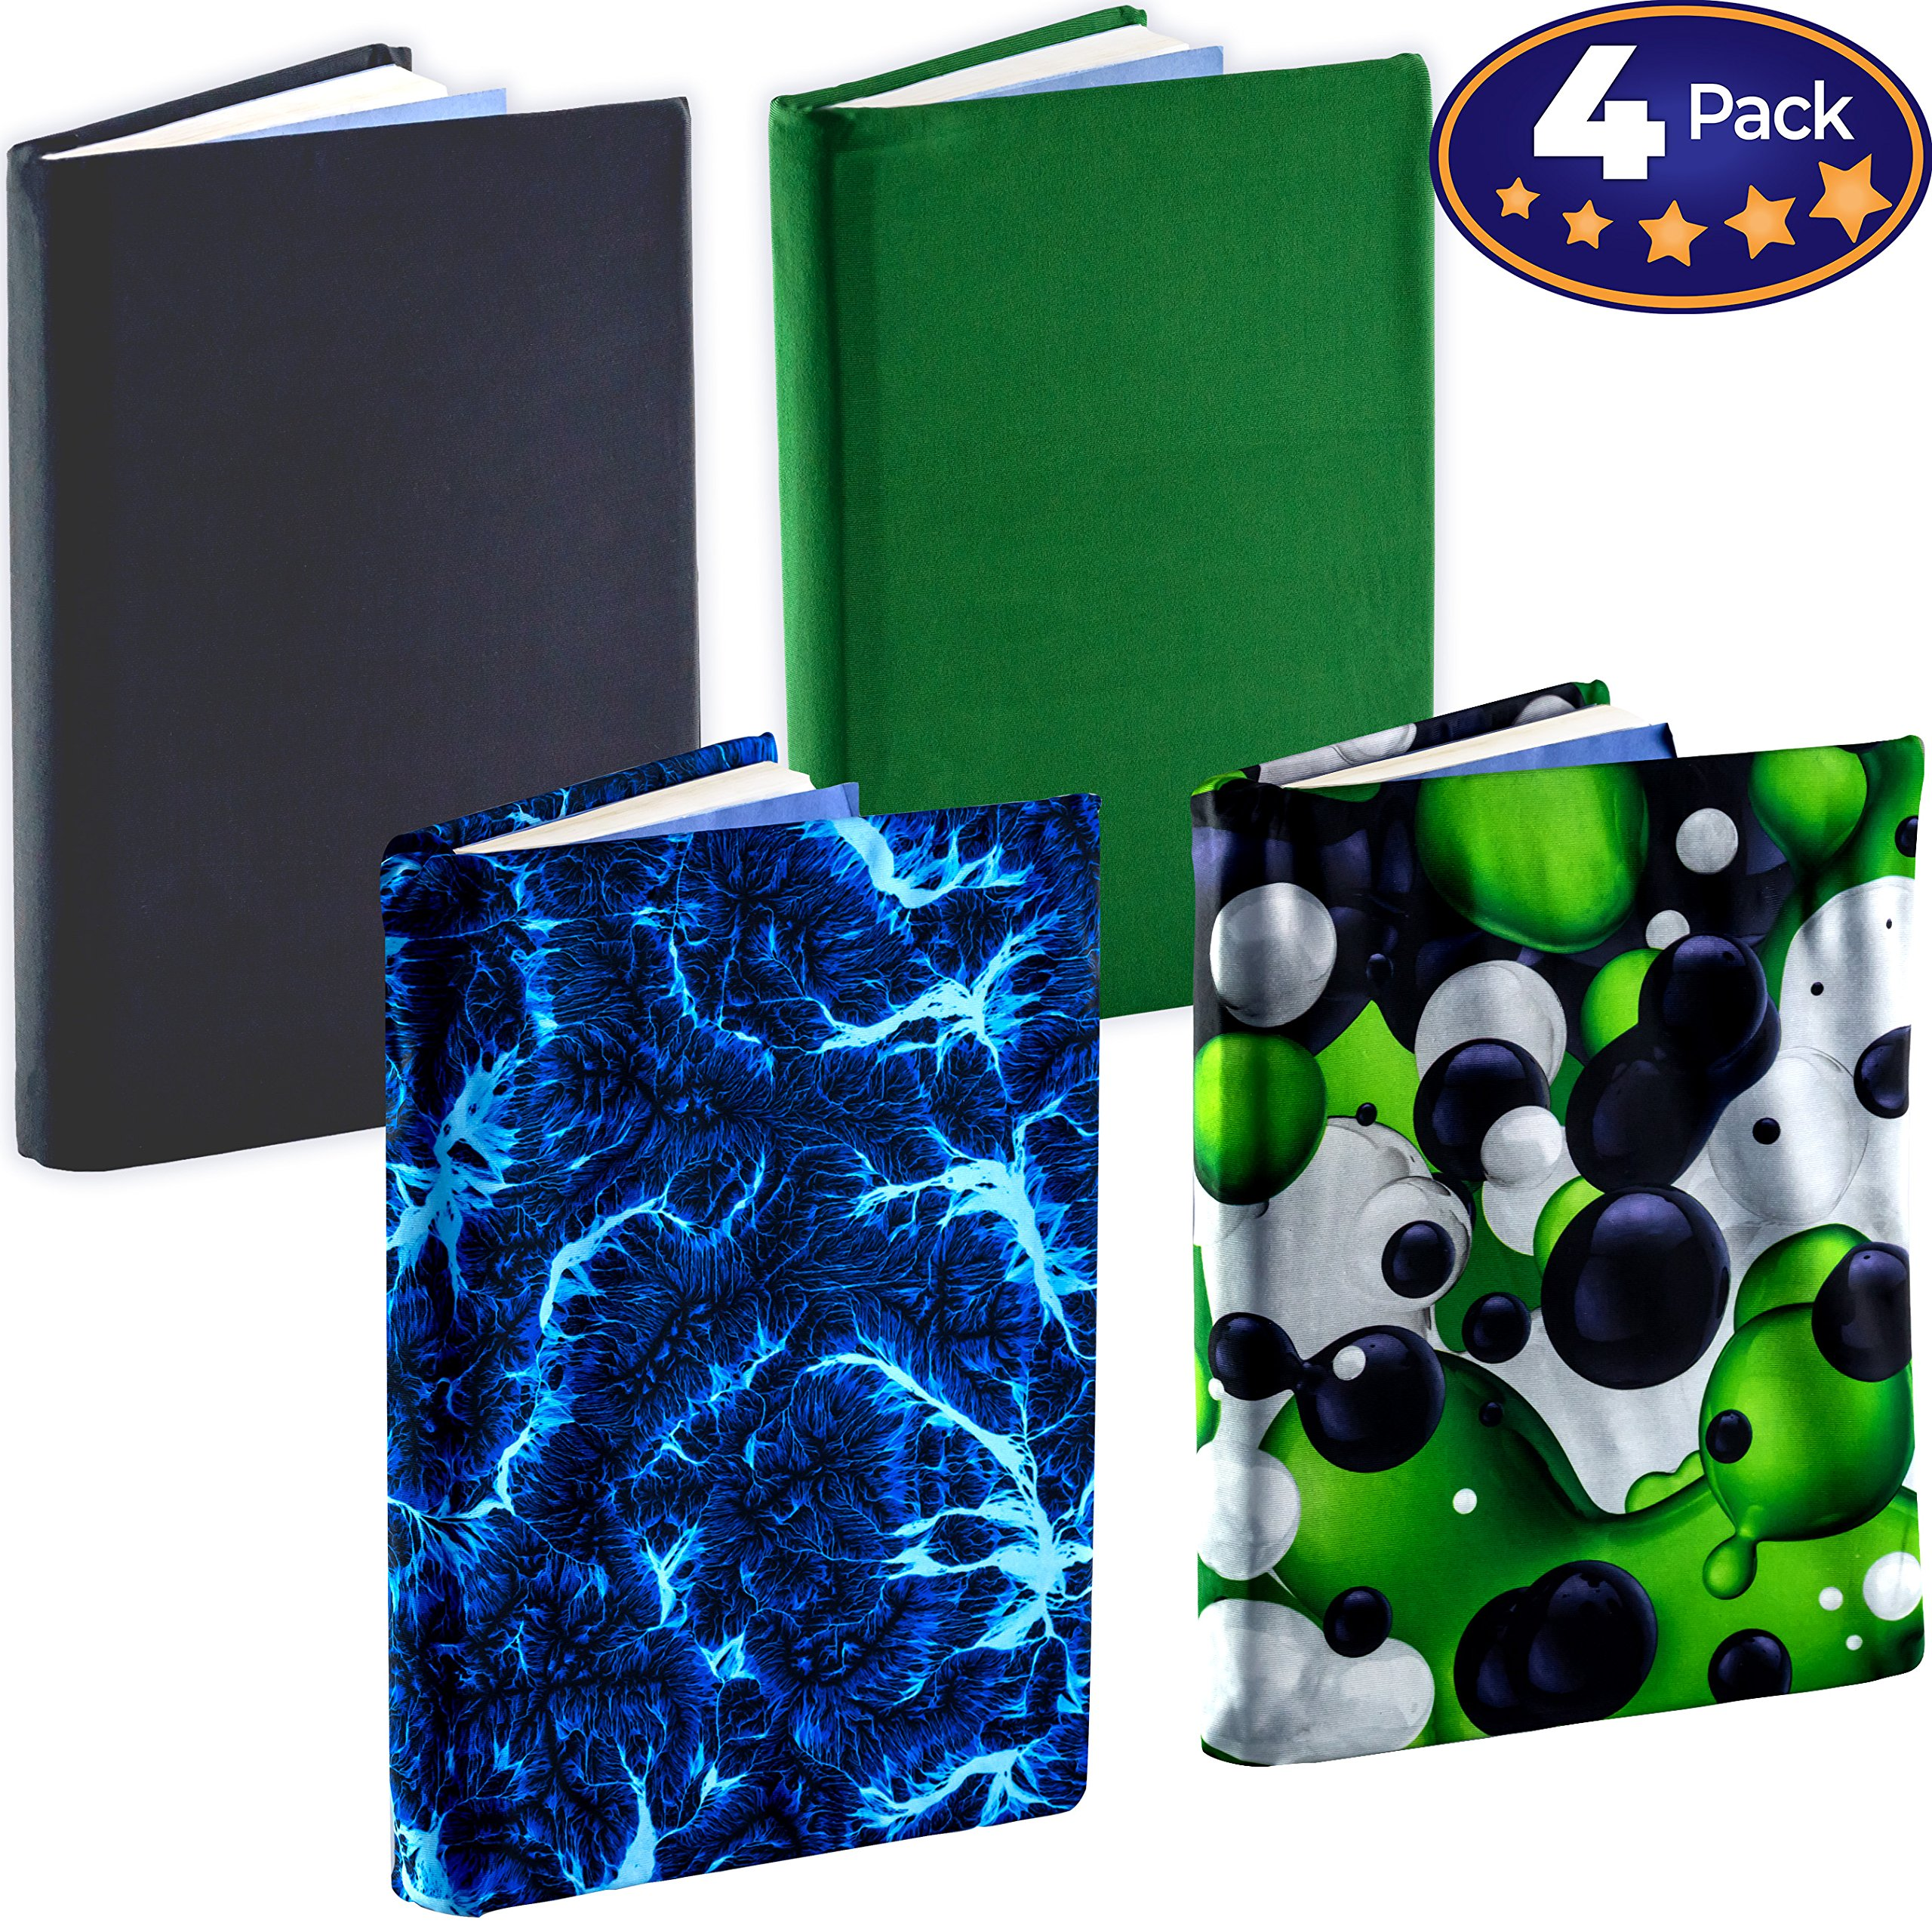 Jumbo, Stretchable Book Cover Color 4 Pack. Fits Most Hardcover Textbooks up to 9 x 11. Adhesive-Free, Nylon Fabric Protectors are A Needed School Supply for Students. (Bold 2)